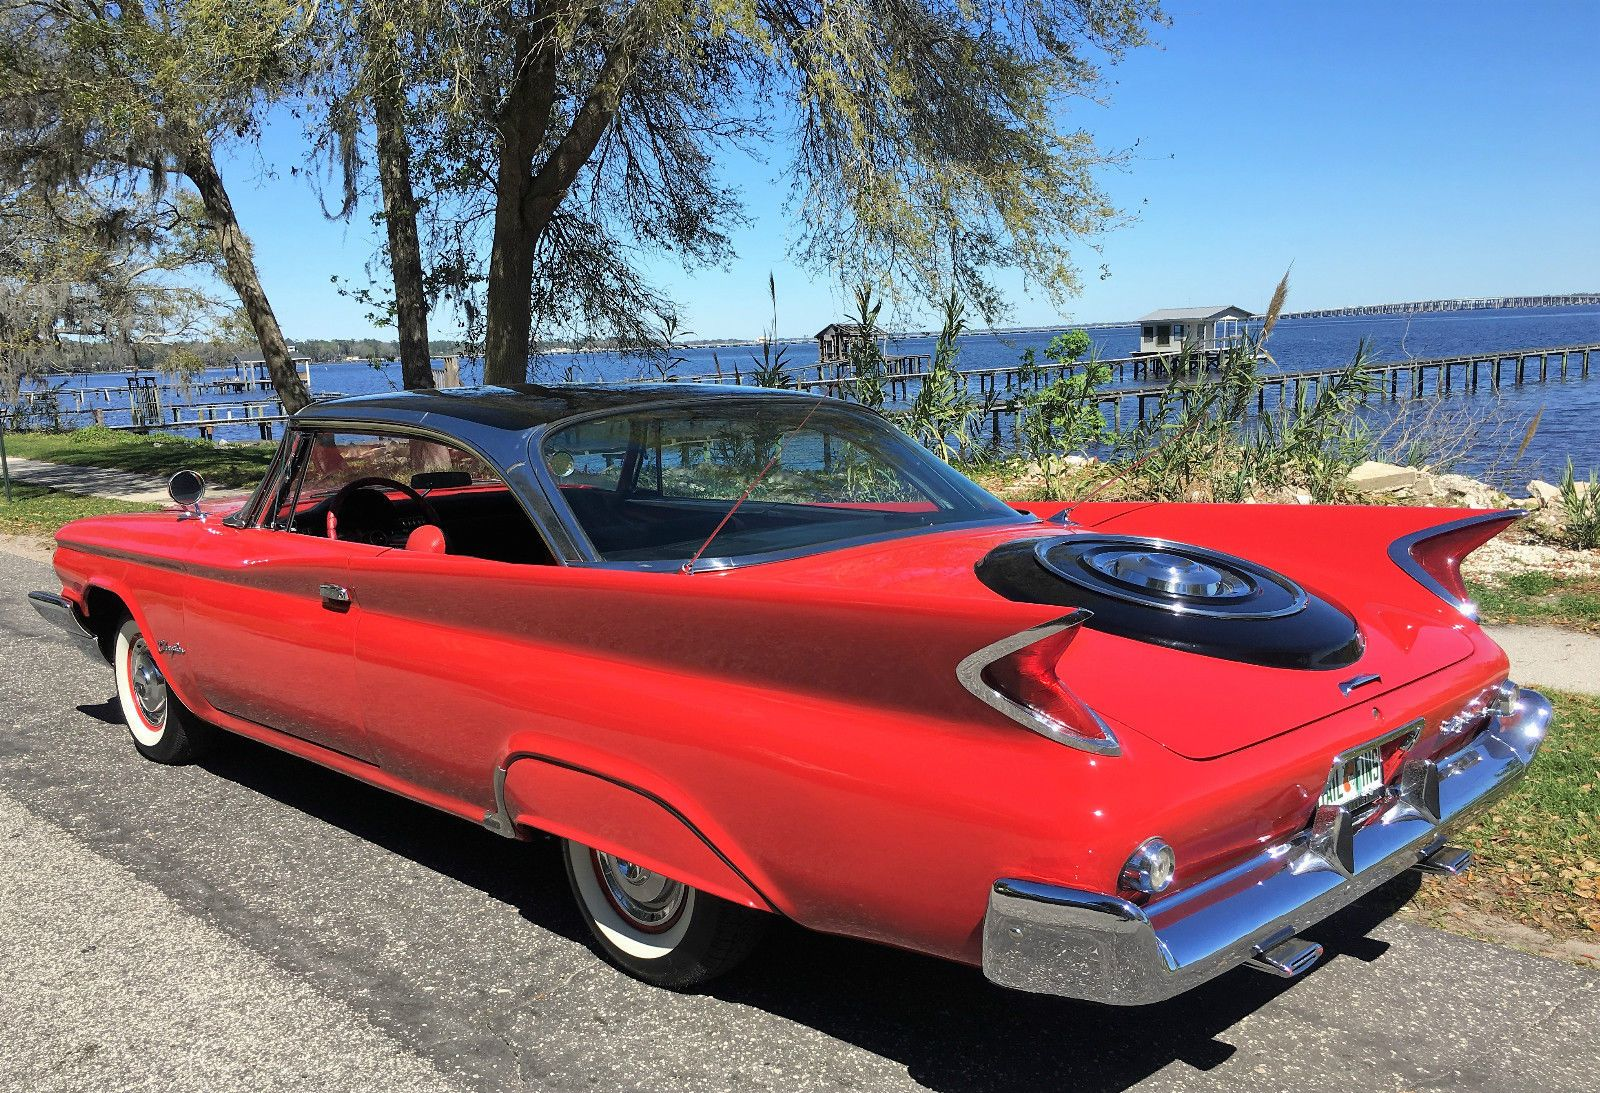 1960 chrysler newport bing images cars my husband wants pinterest cars and car vehicle